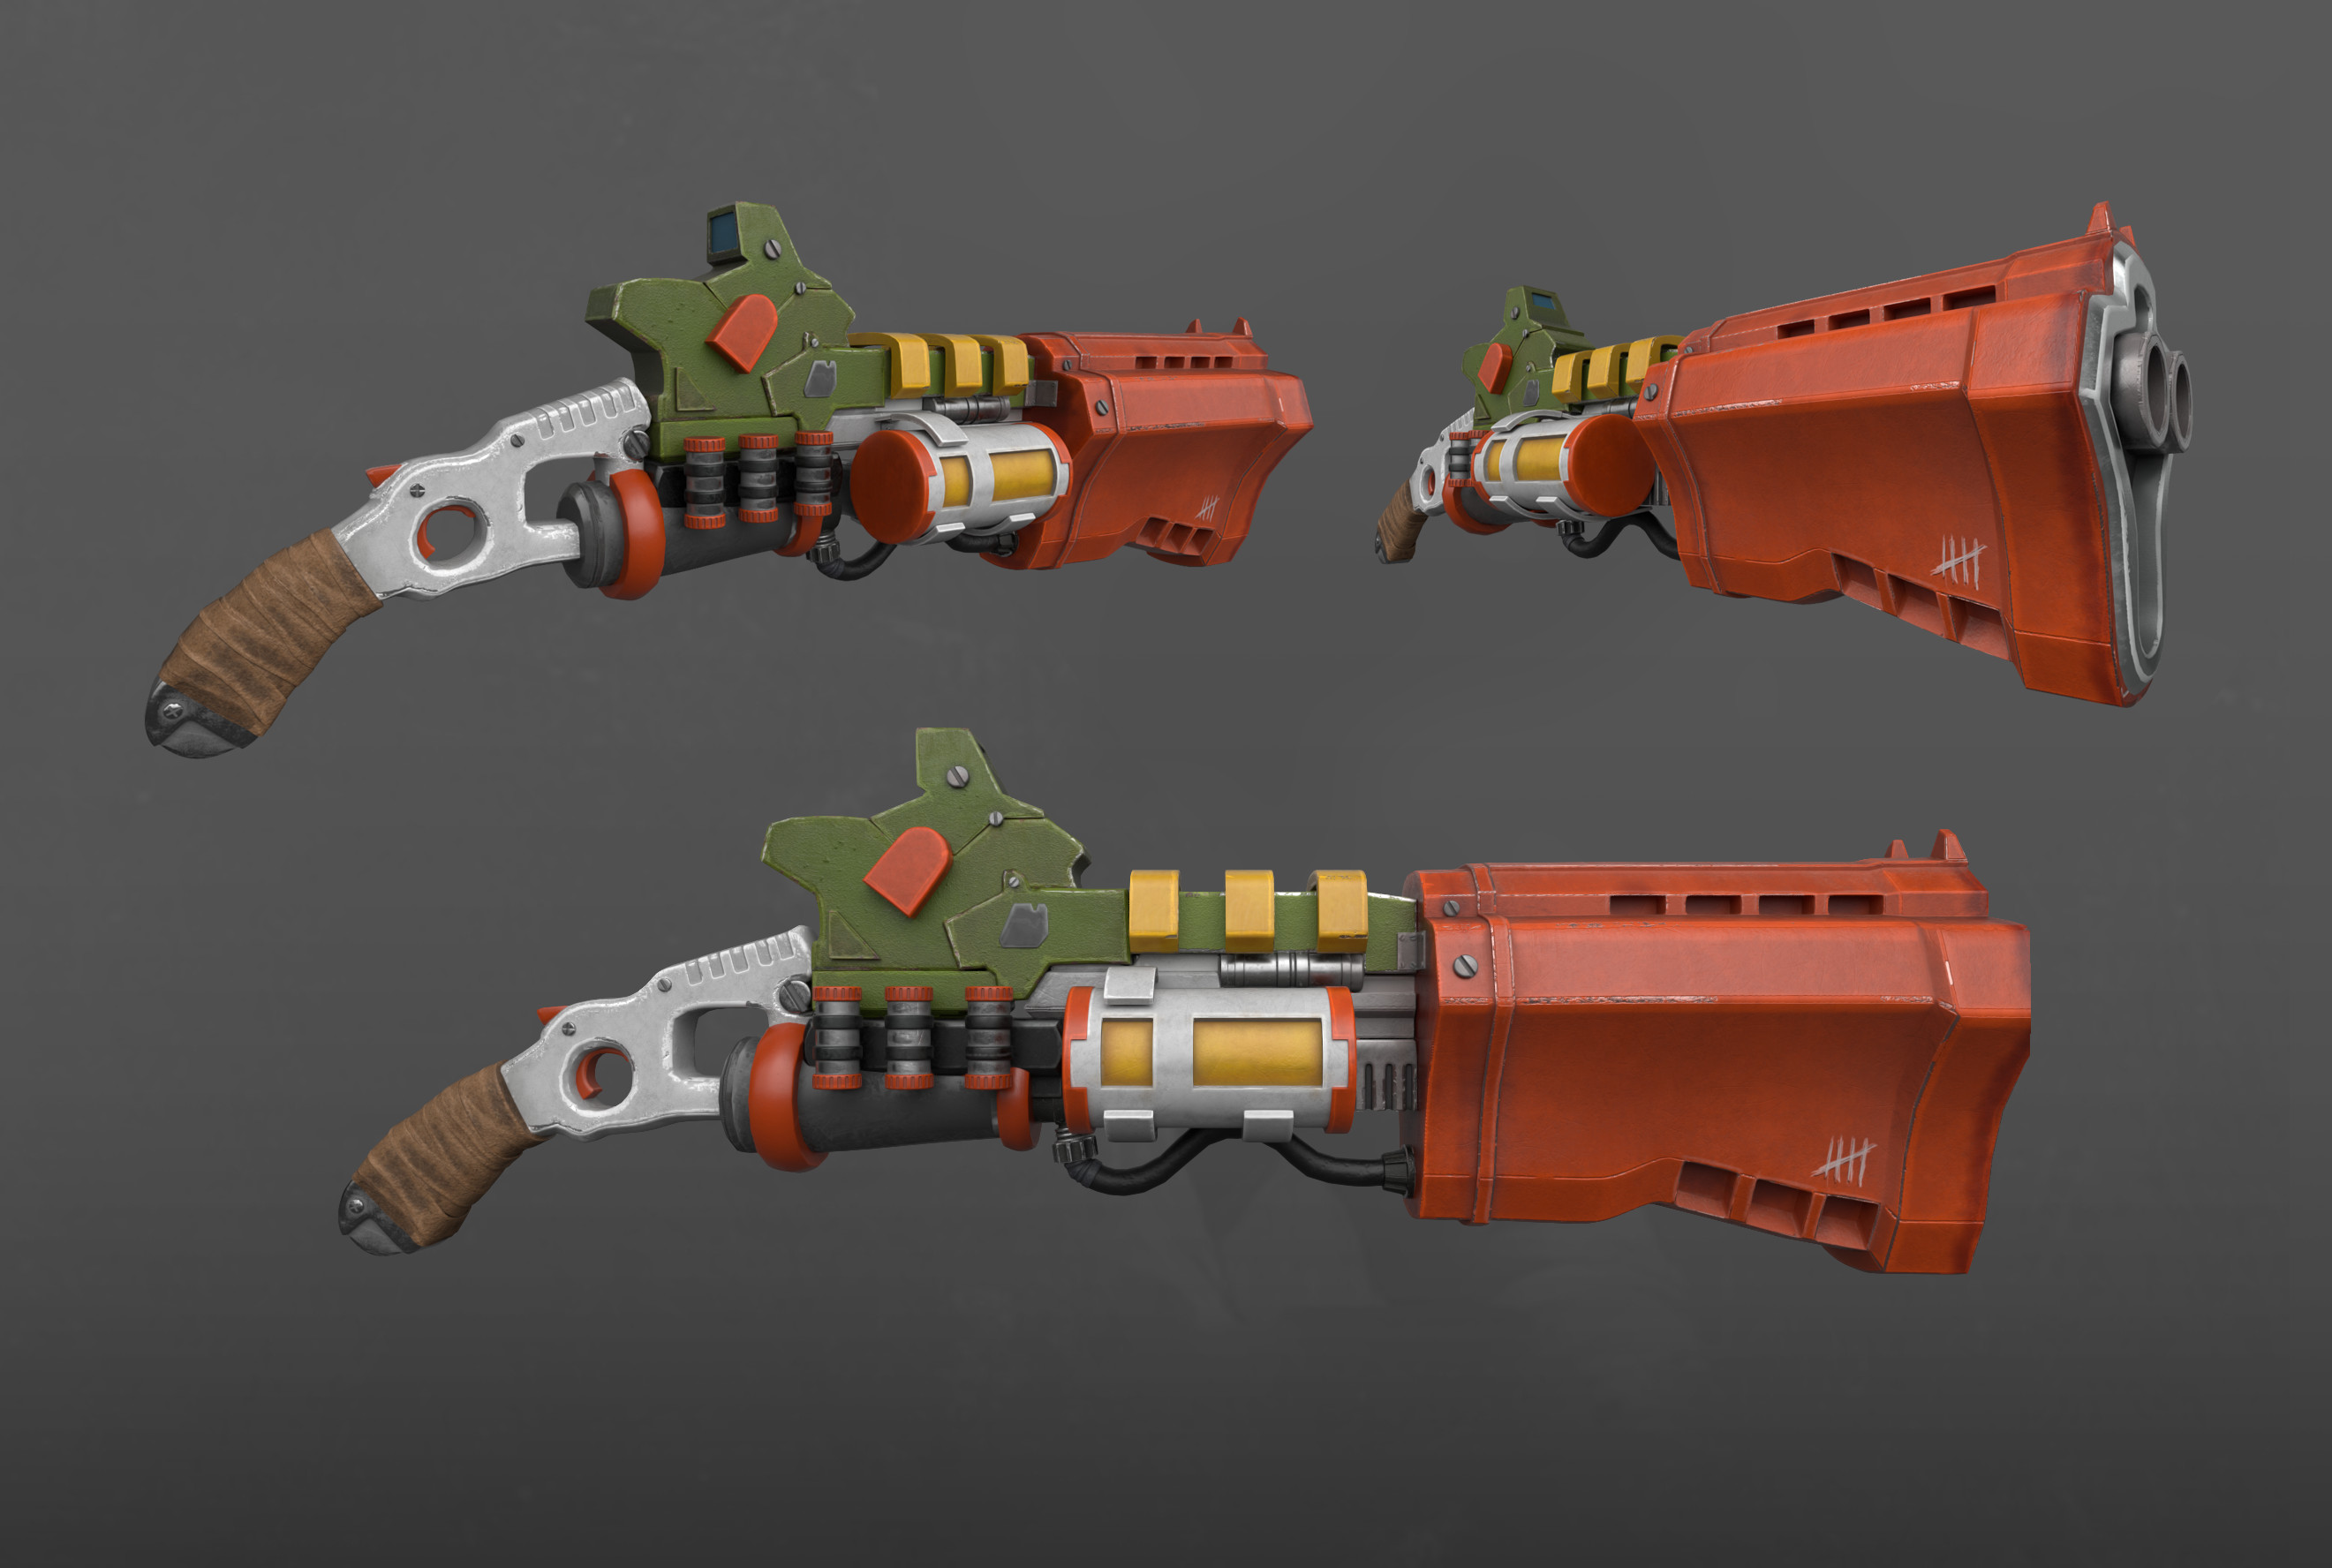 Substance Painter created gun. Loosely inspired by the work of the talented Sergey Vasnev https://www.artstation.com/artwork/r98KL